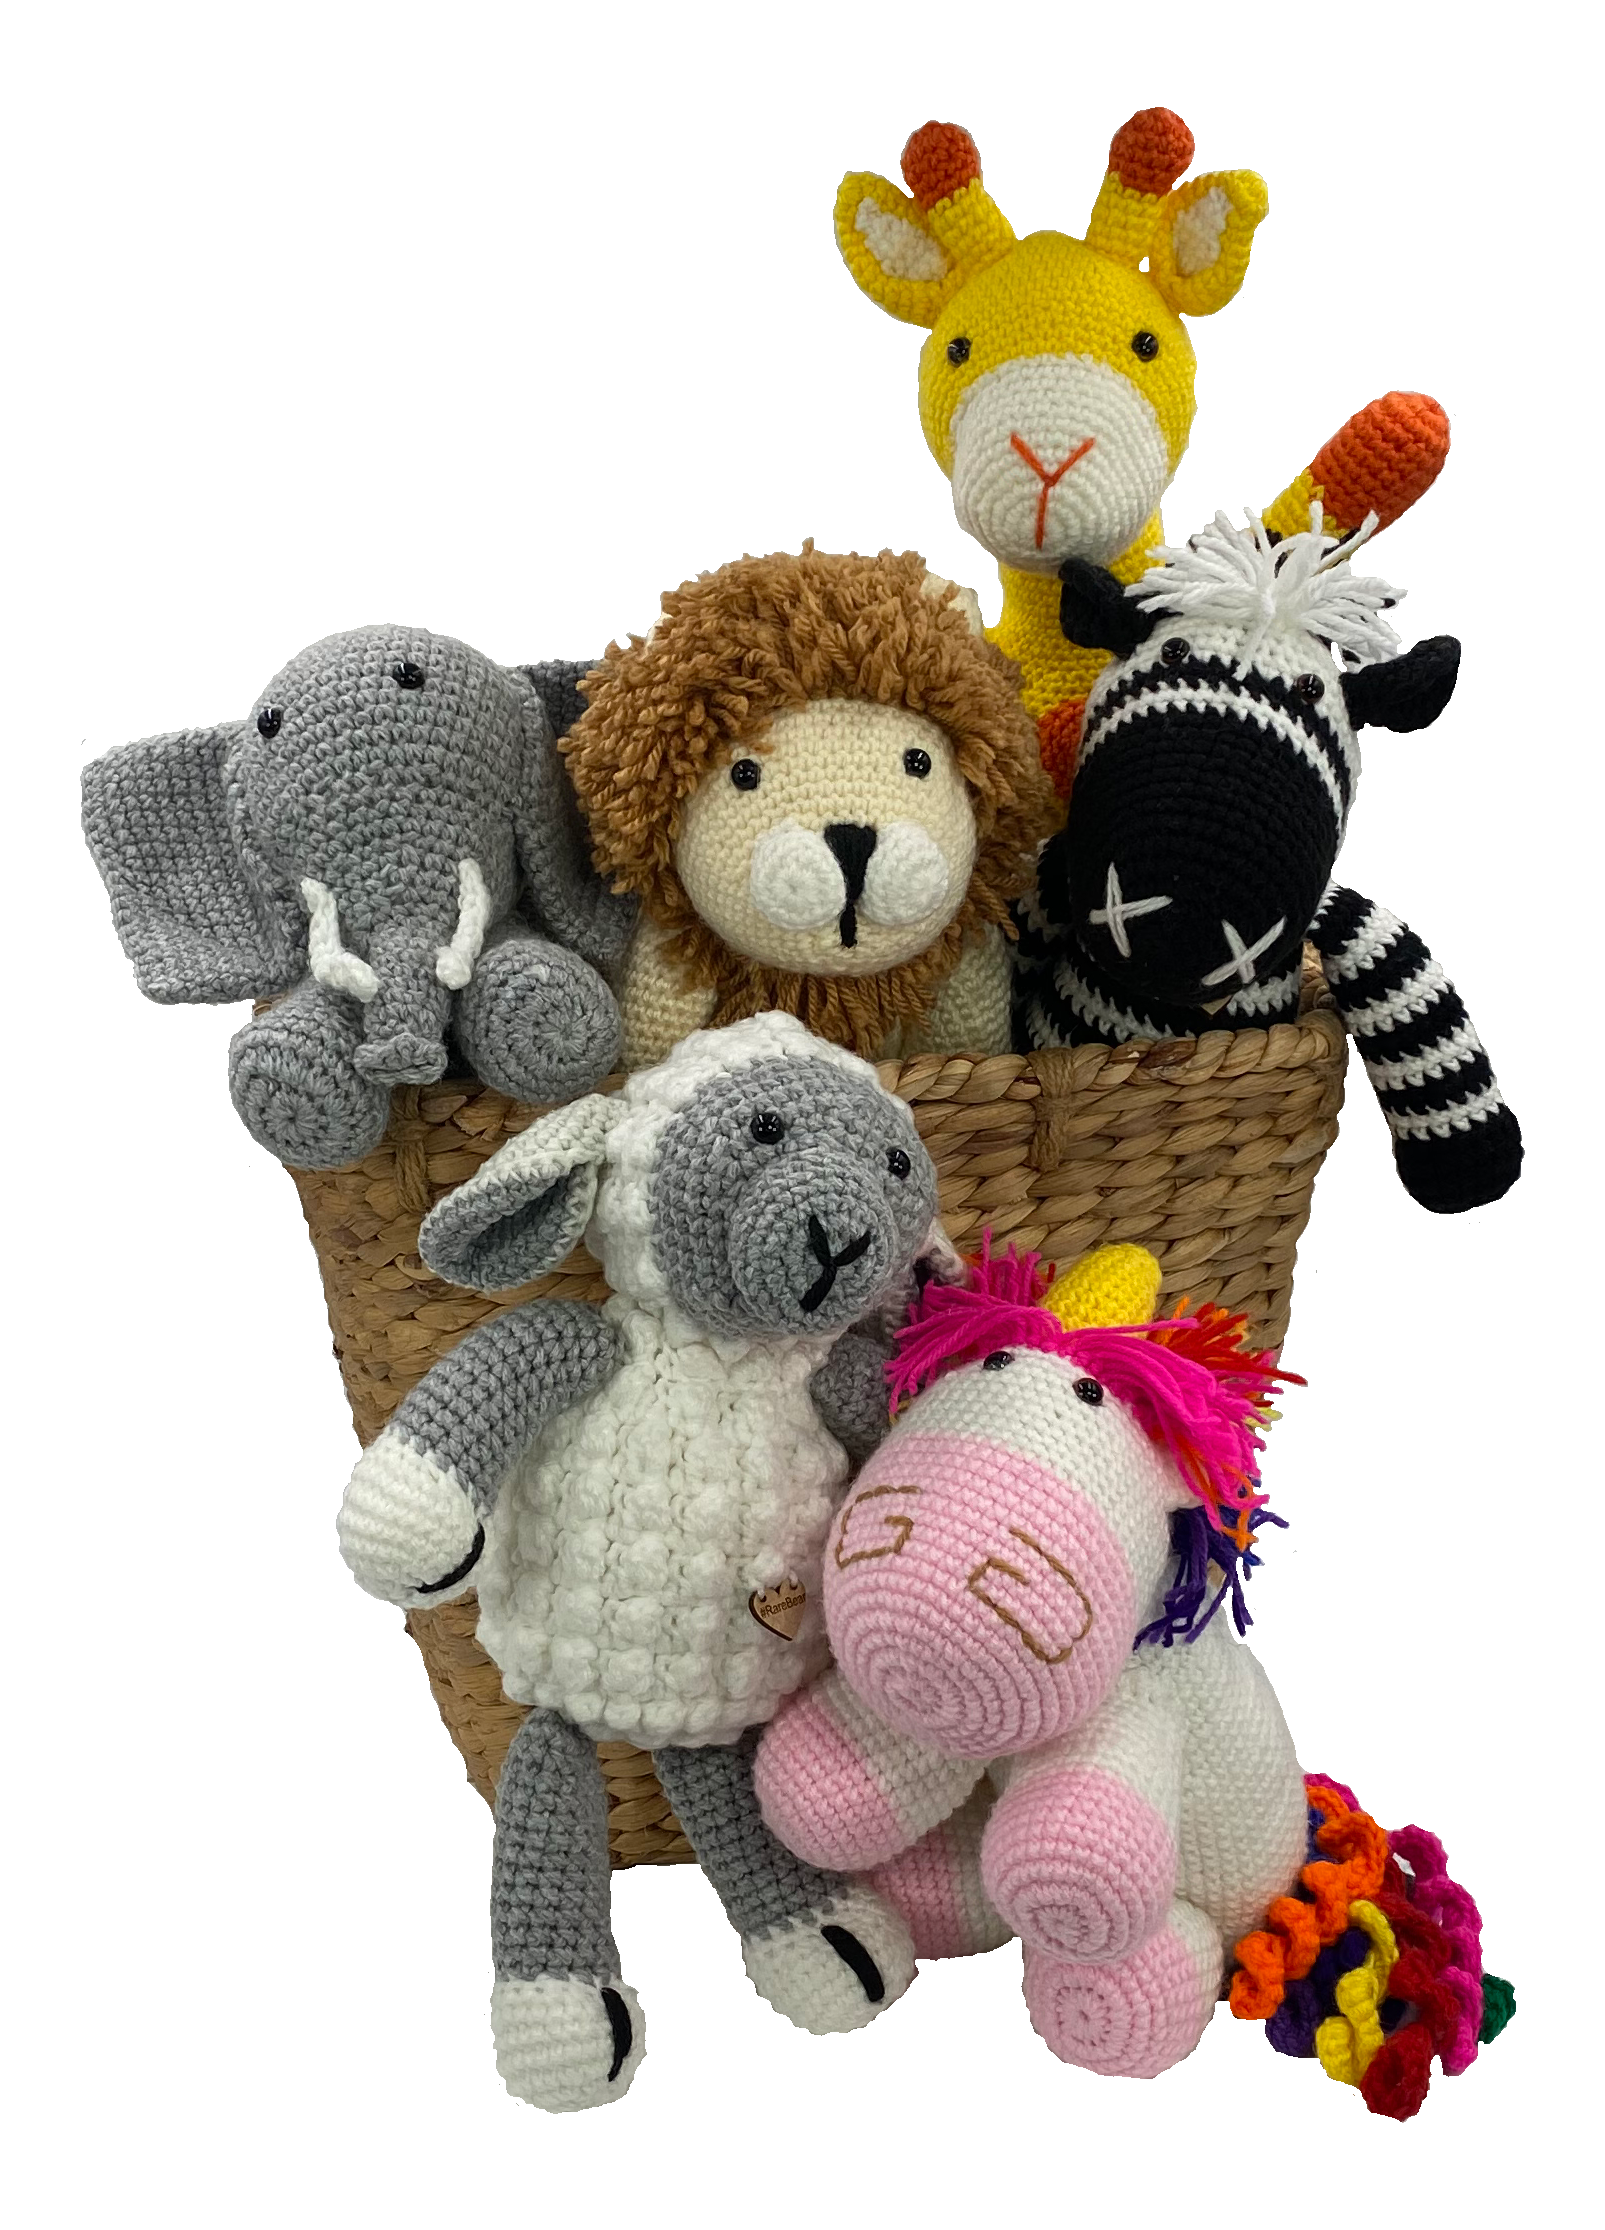 Angeliques Toys - Basket of Toys